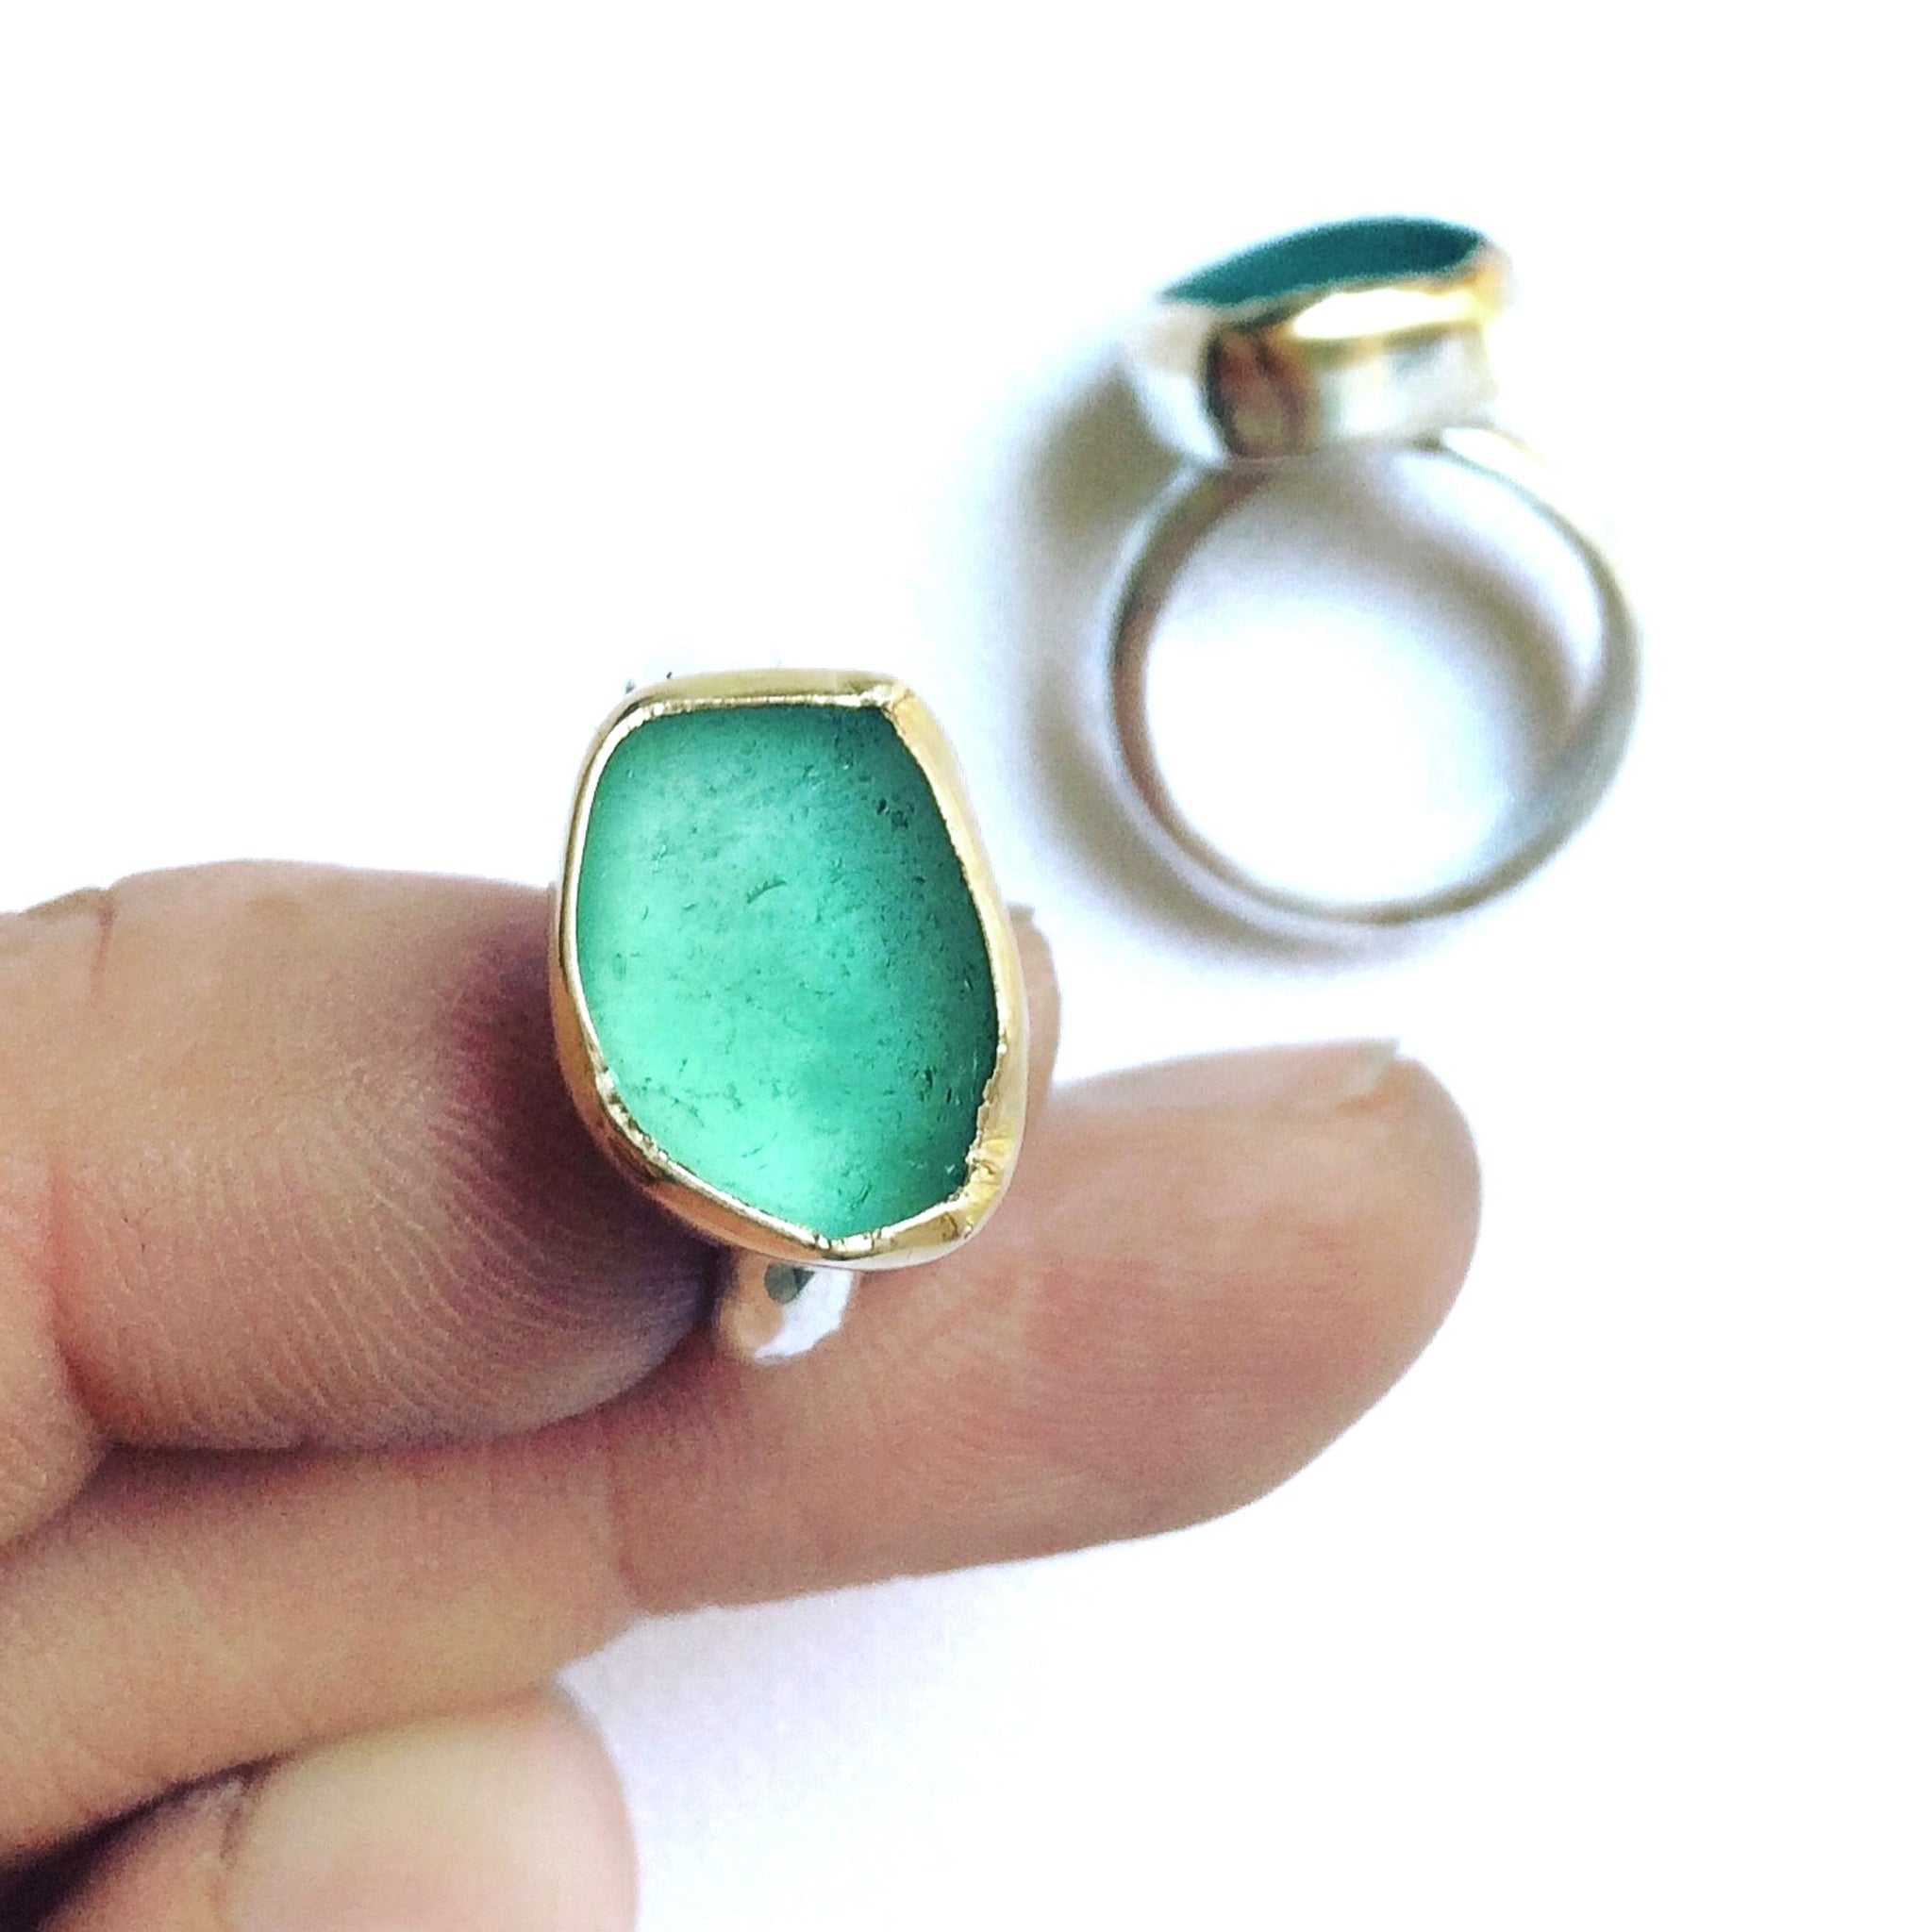 aqua green seaglass ring